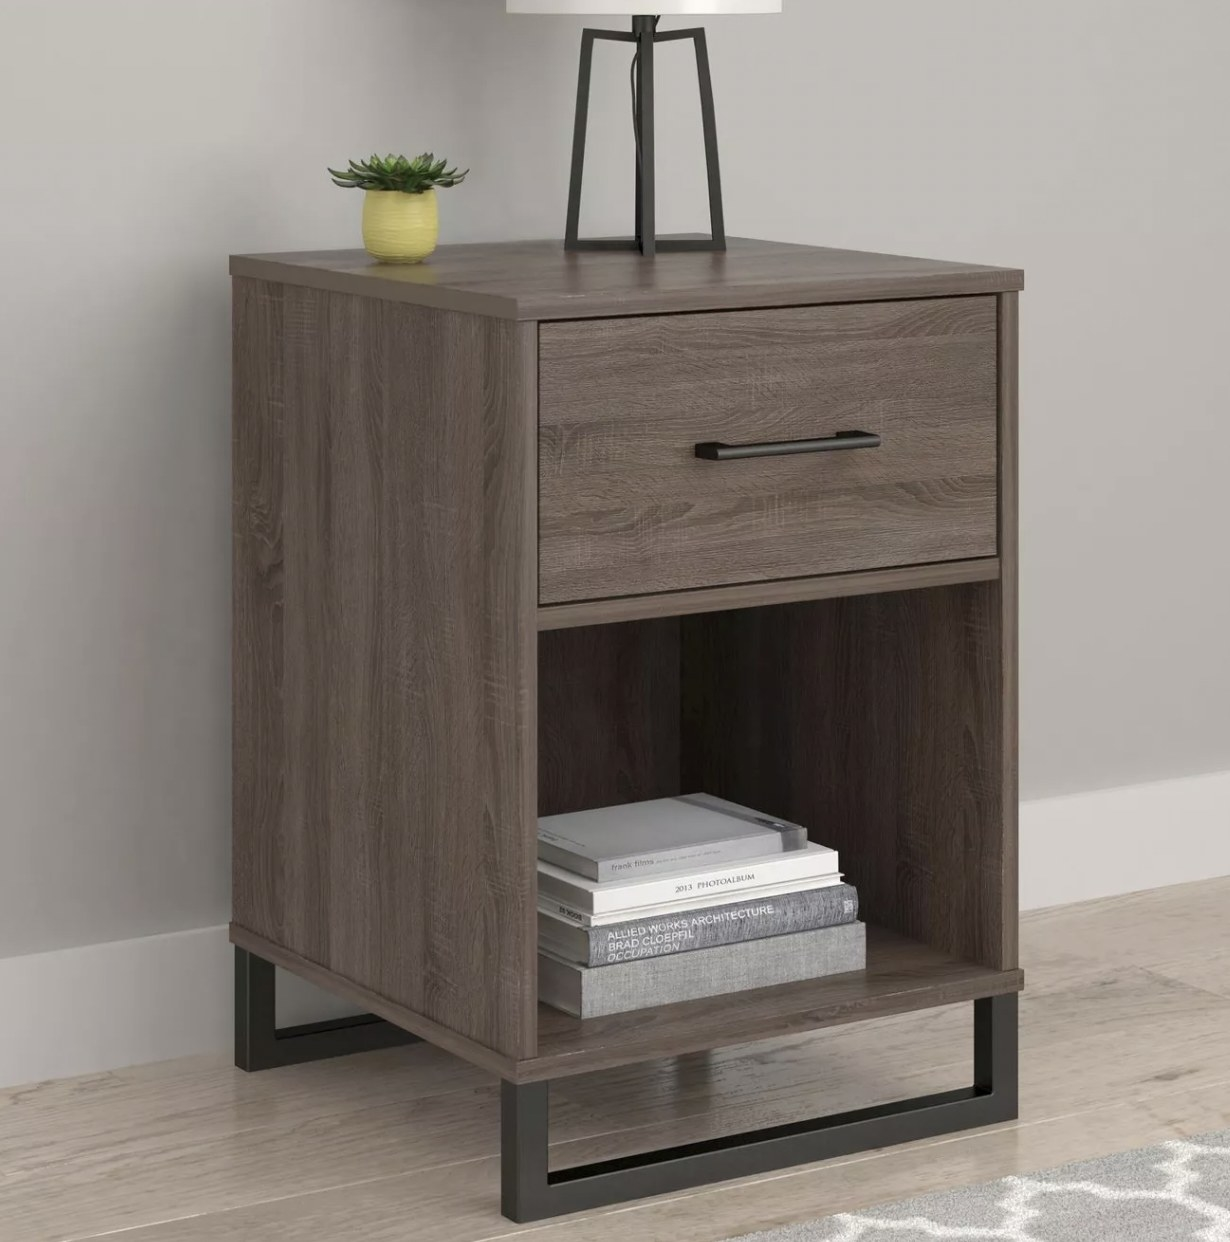 a grey-brown mixed-material nightstand with one drawer and one shelf